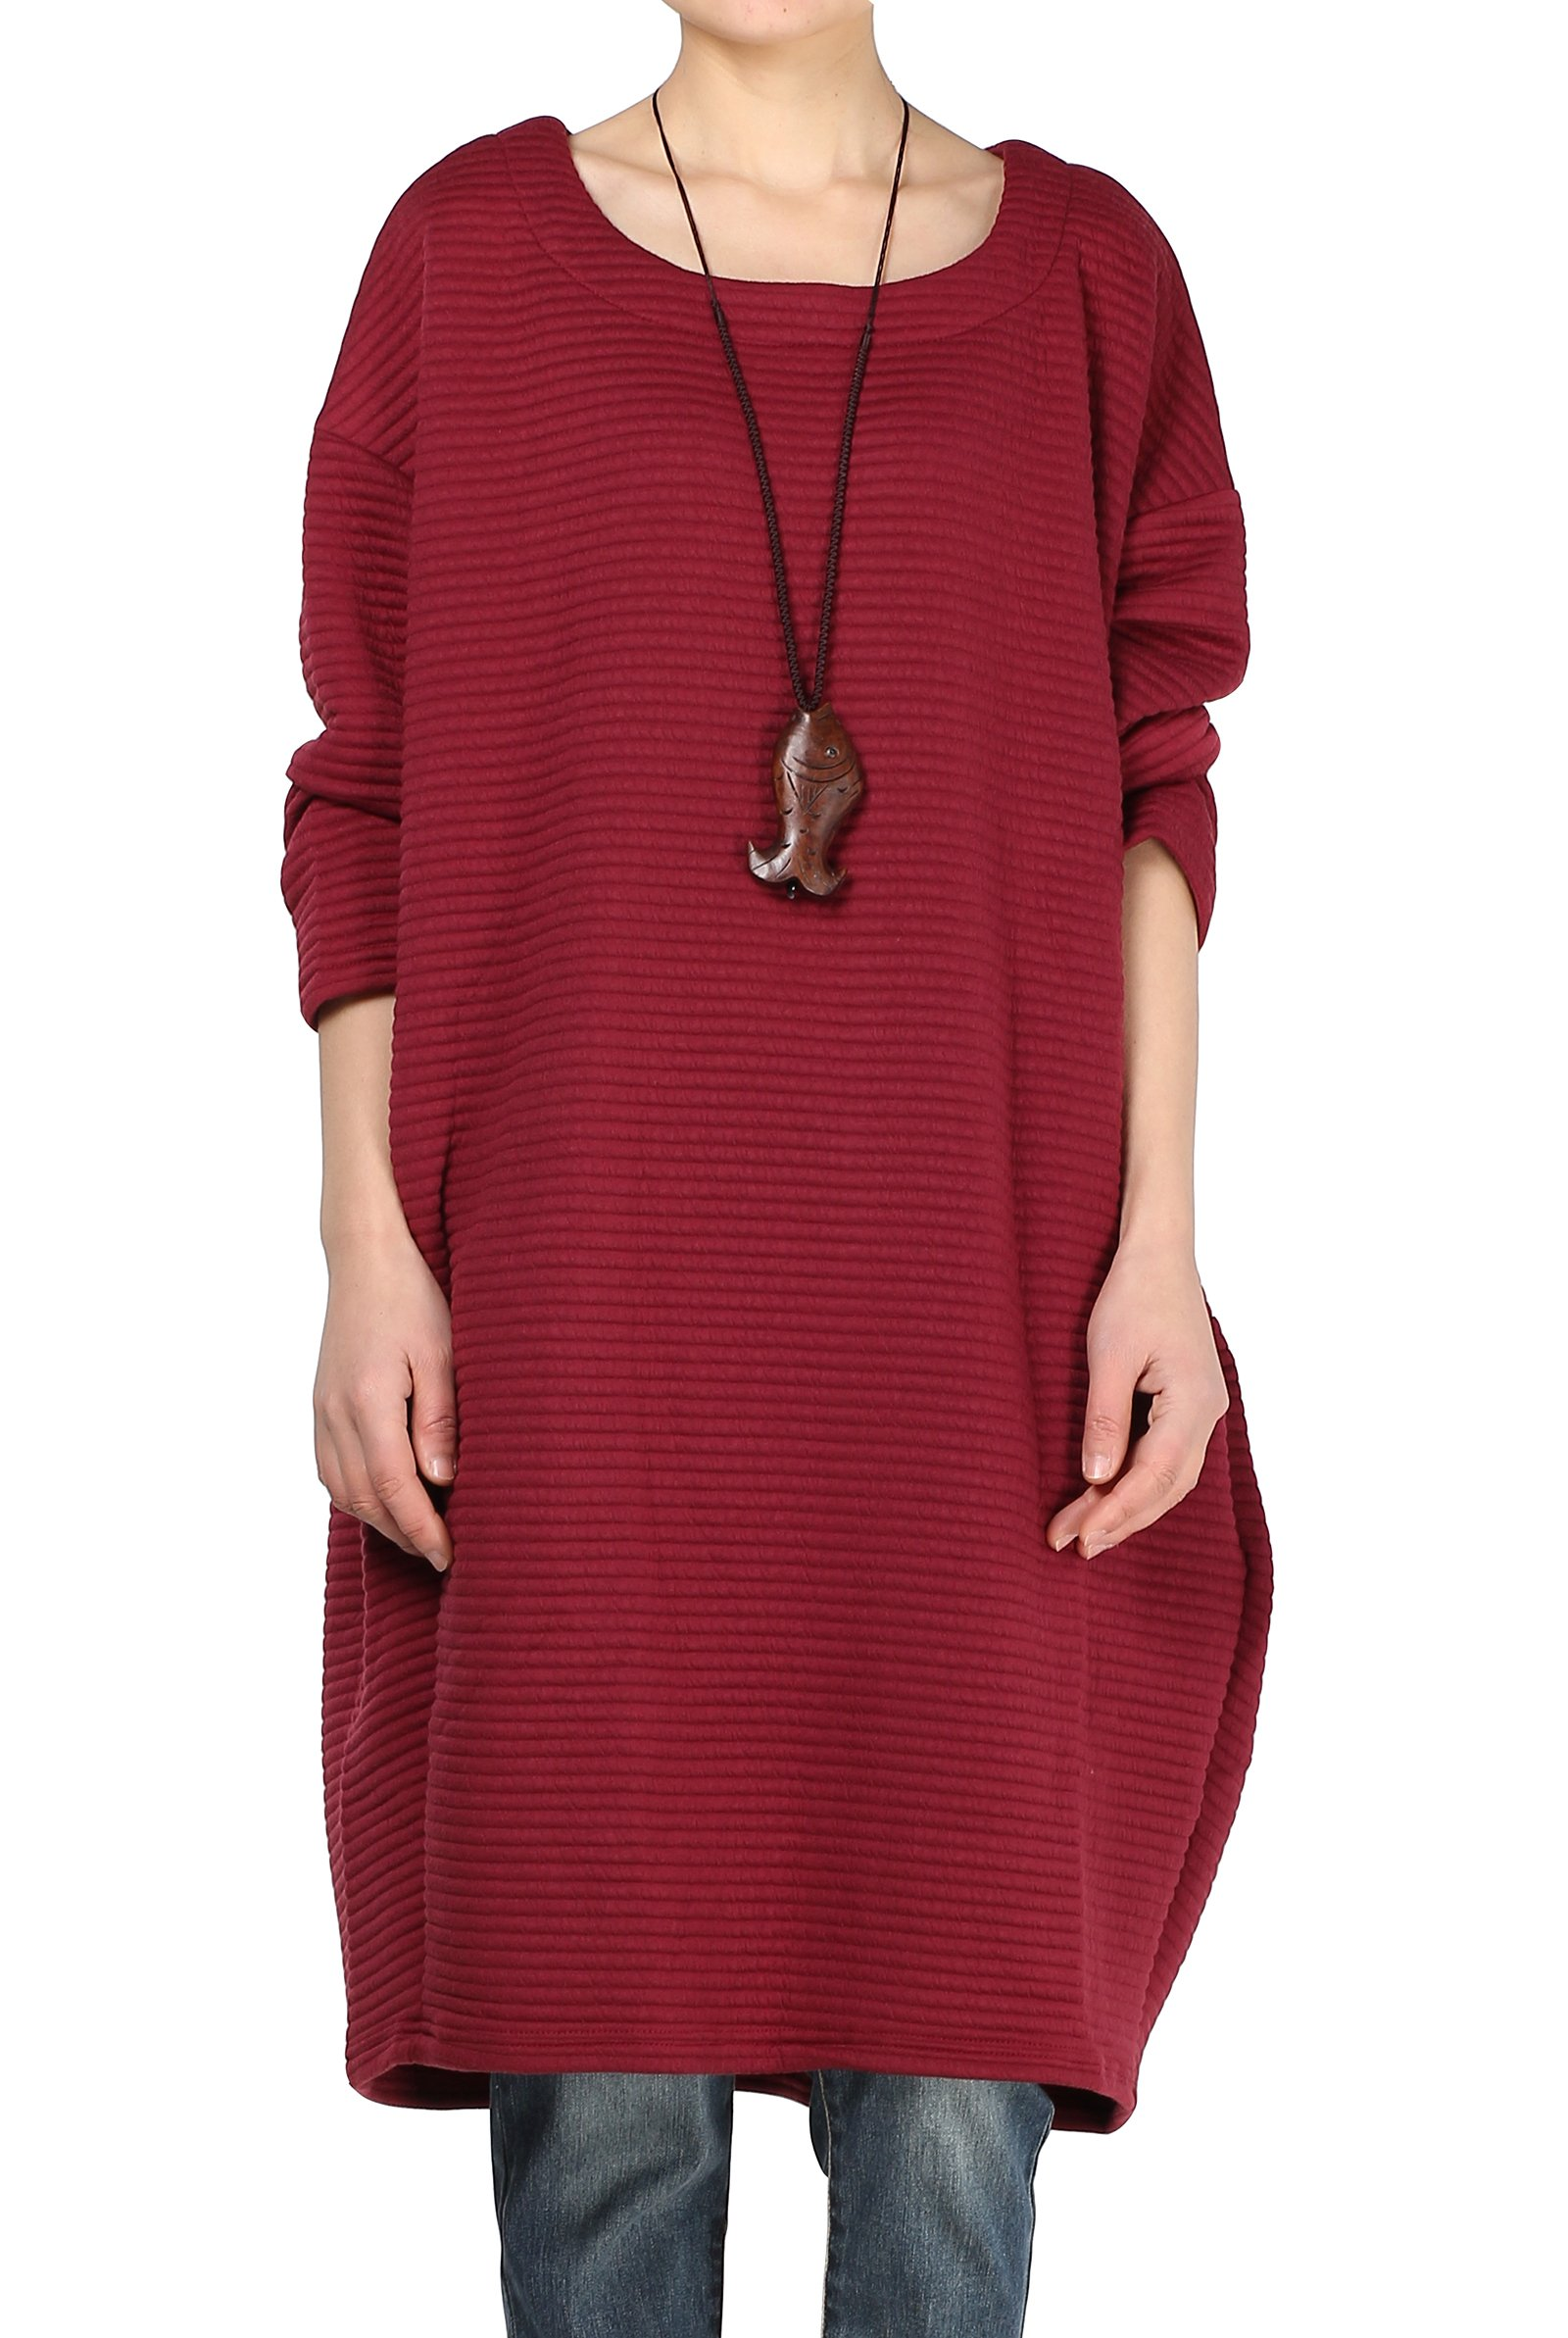 Mordenmiss Women's Loose Fit Bat Sleeve Basic Tops Dresses Style 1-Red